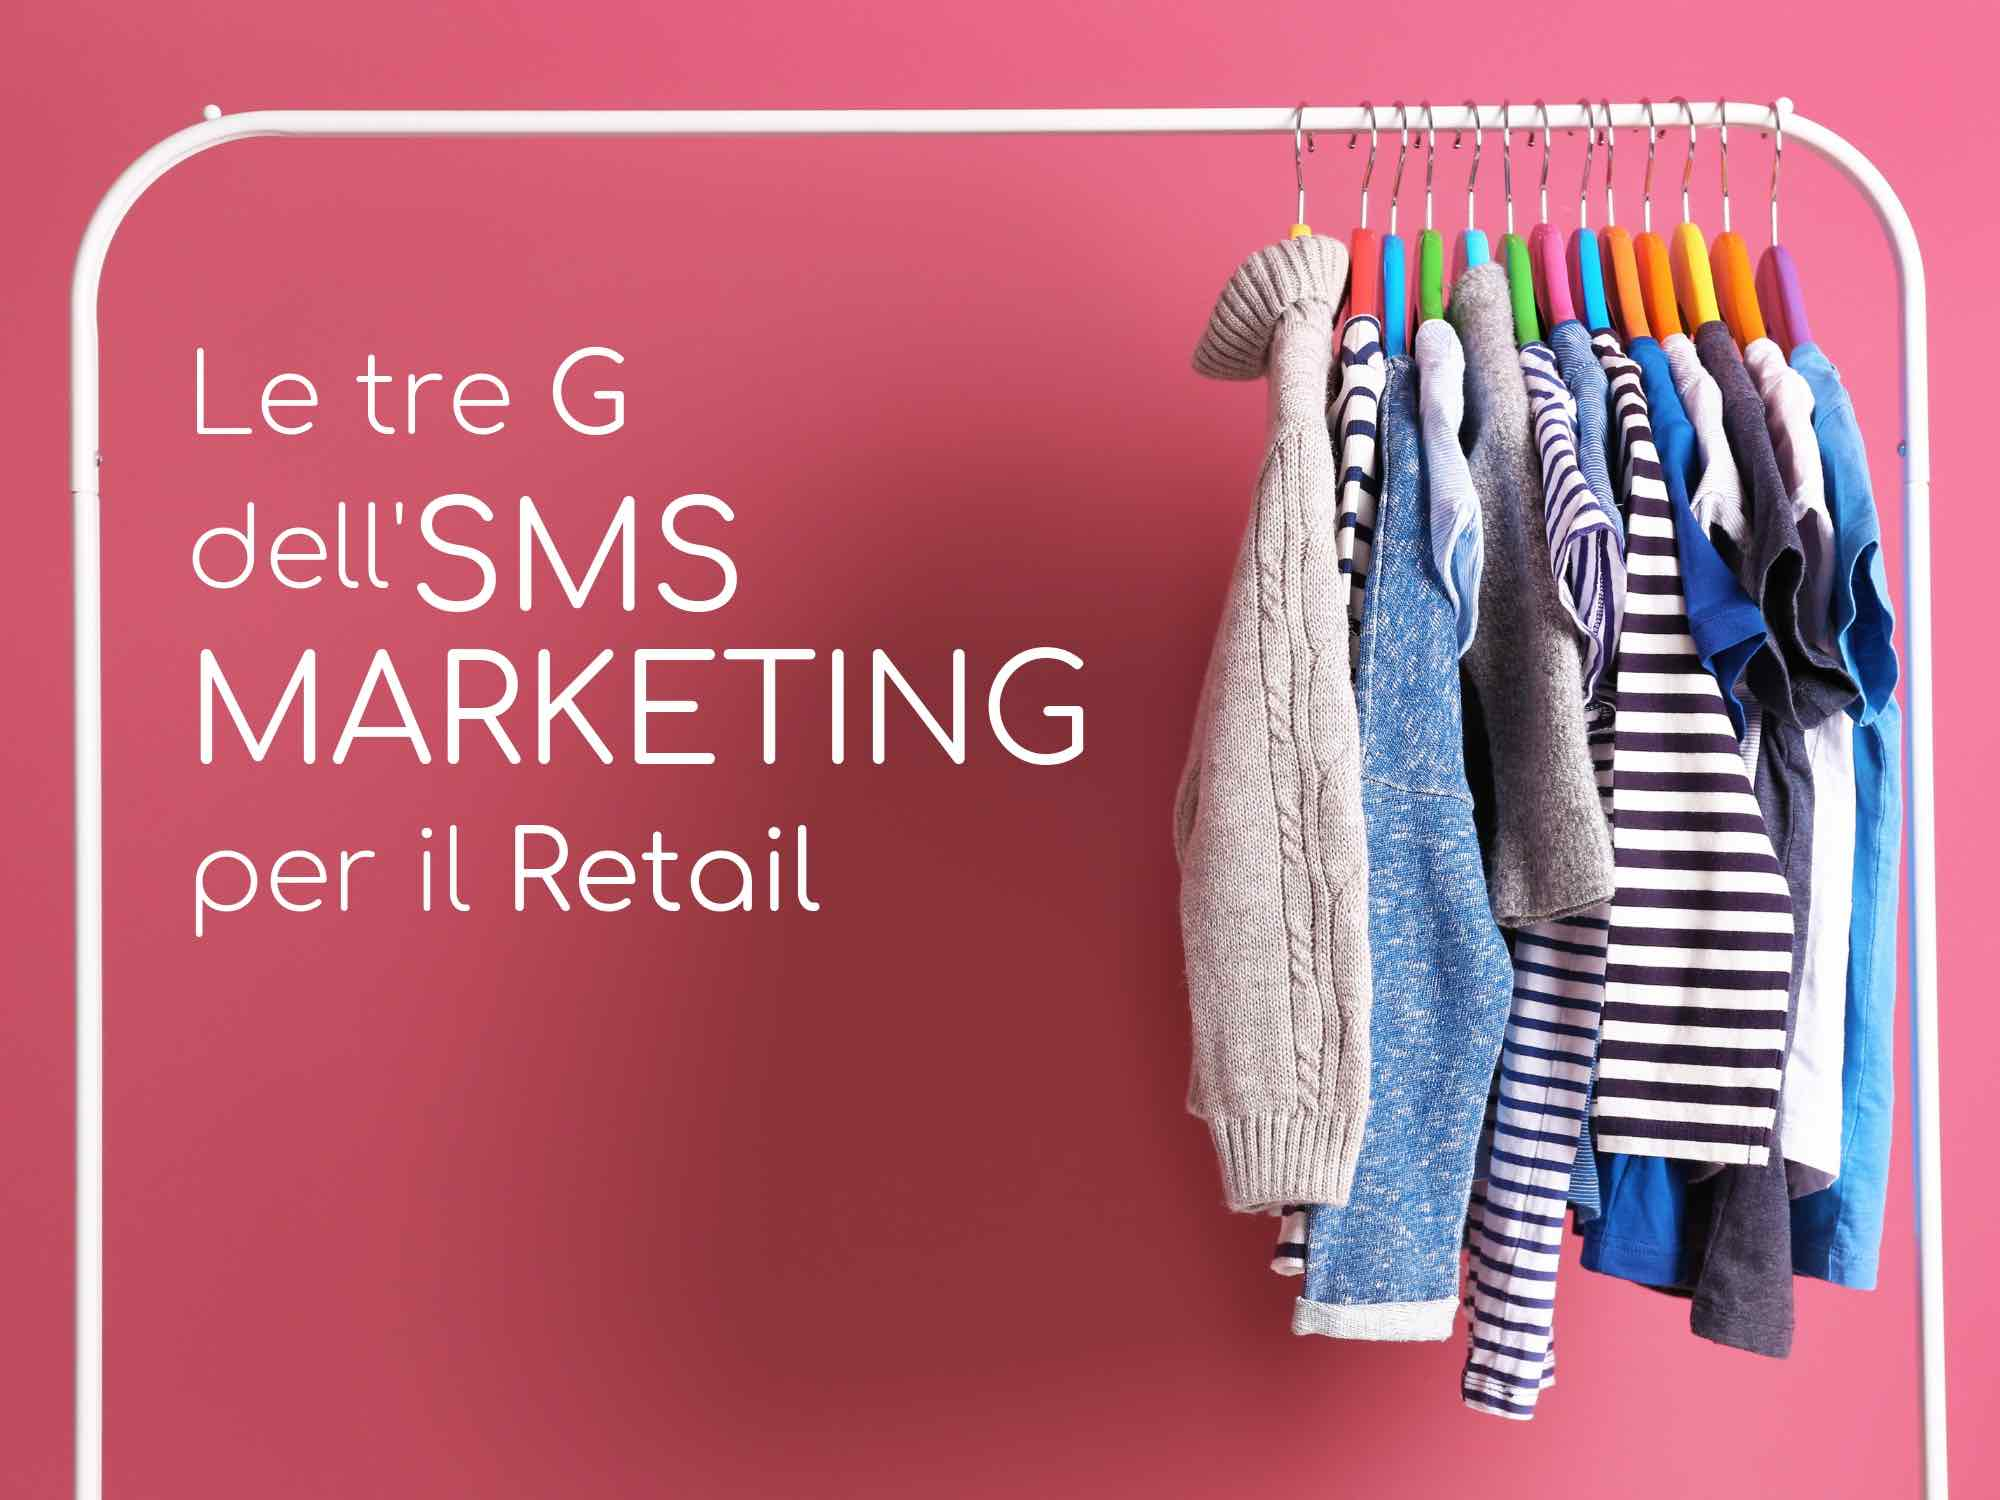 Le tre G dell'SMS Marketing per il retail - Trendoo SMS